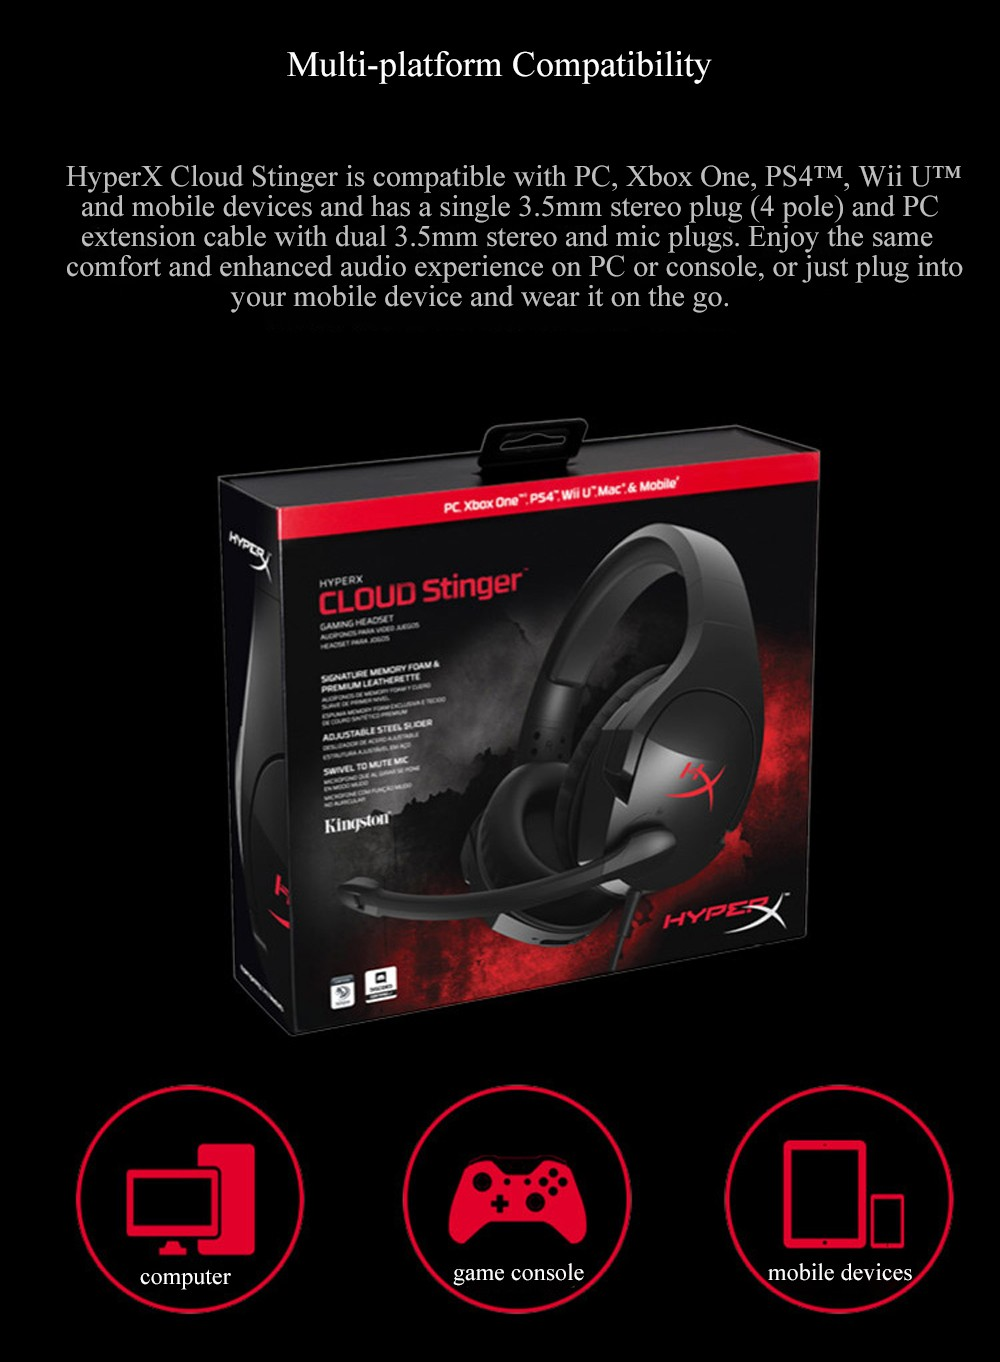 Kingston HyperX Cloud Stinger Auriculares Mic Headphone Steelseries Gaming Headset with Microphone For PC PS4 Xbox Mobile 30